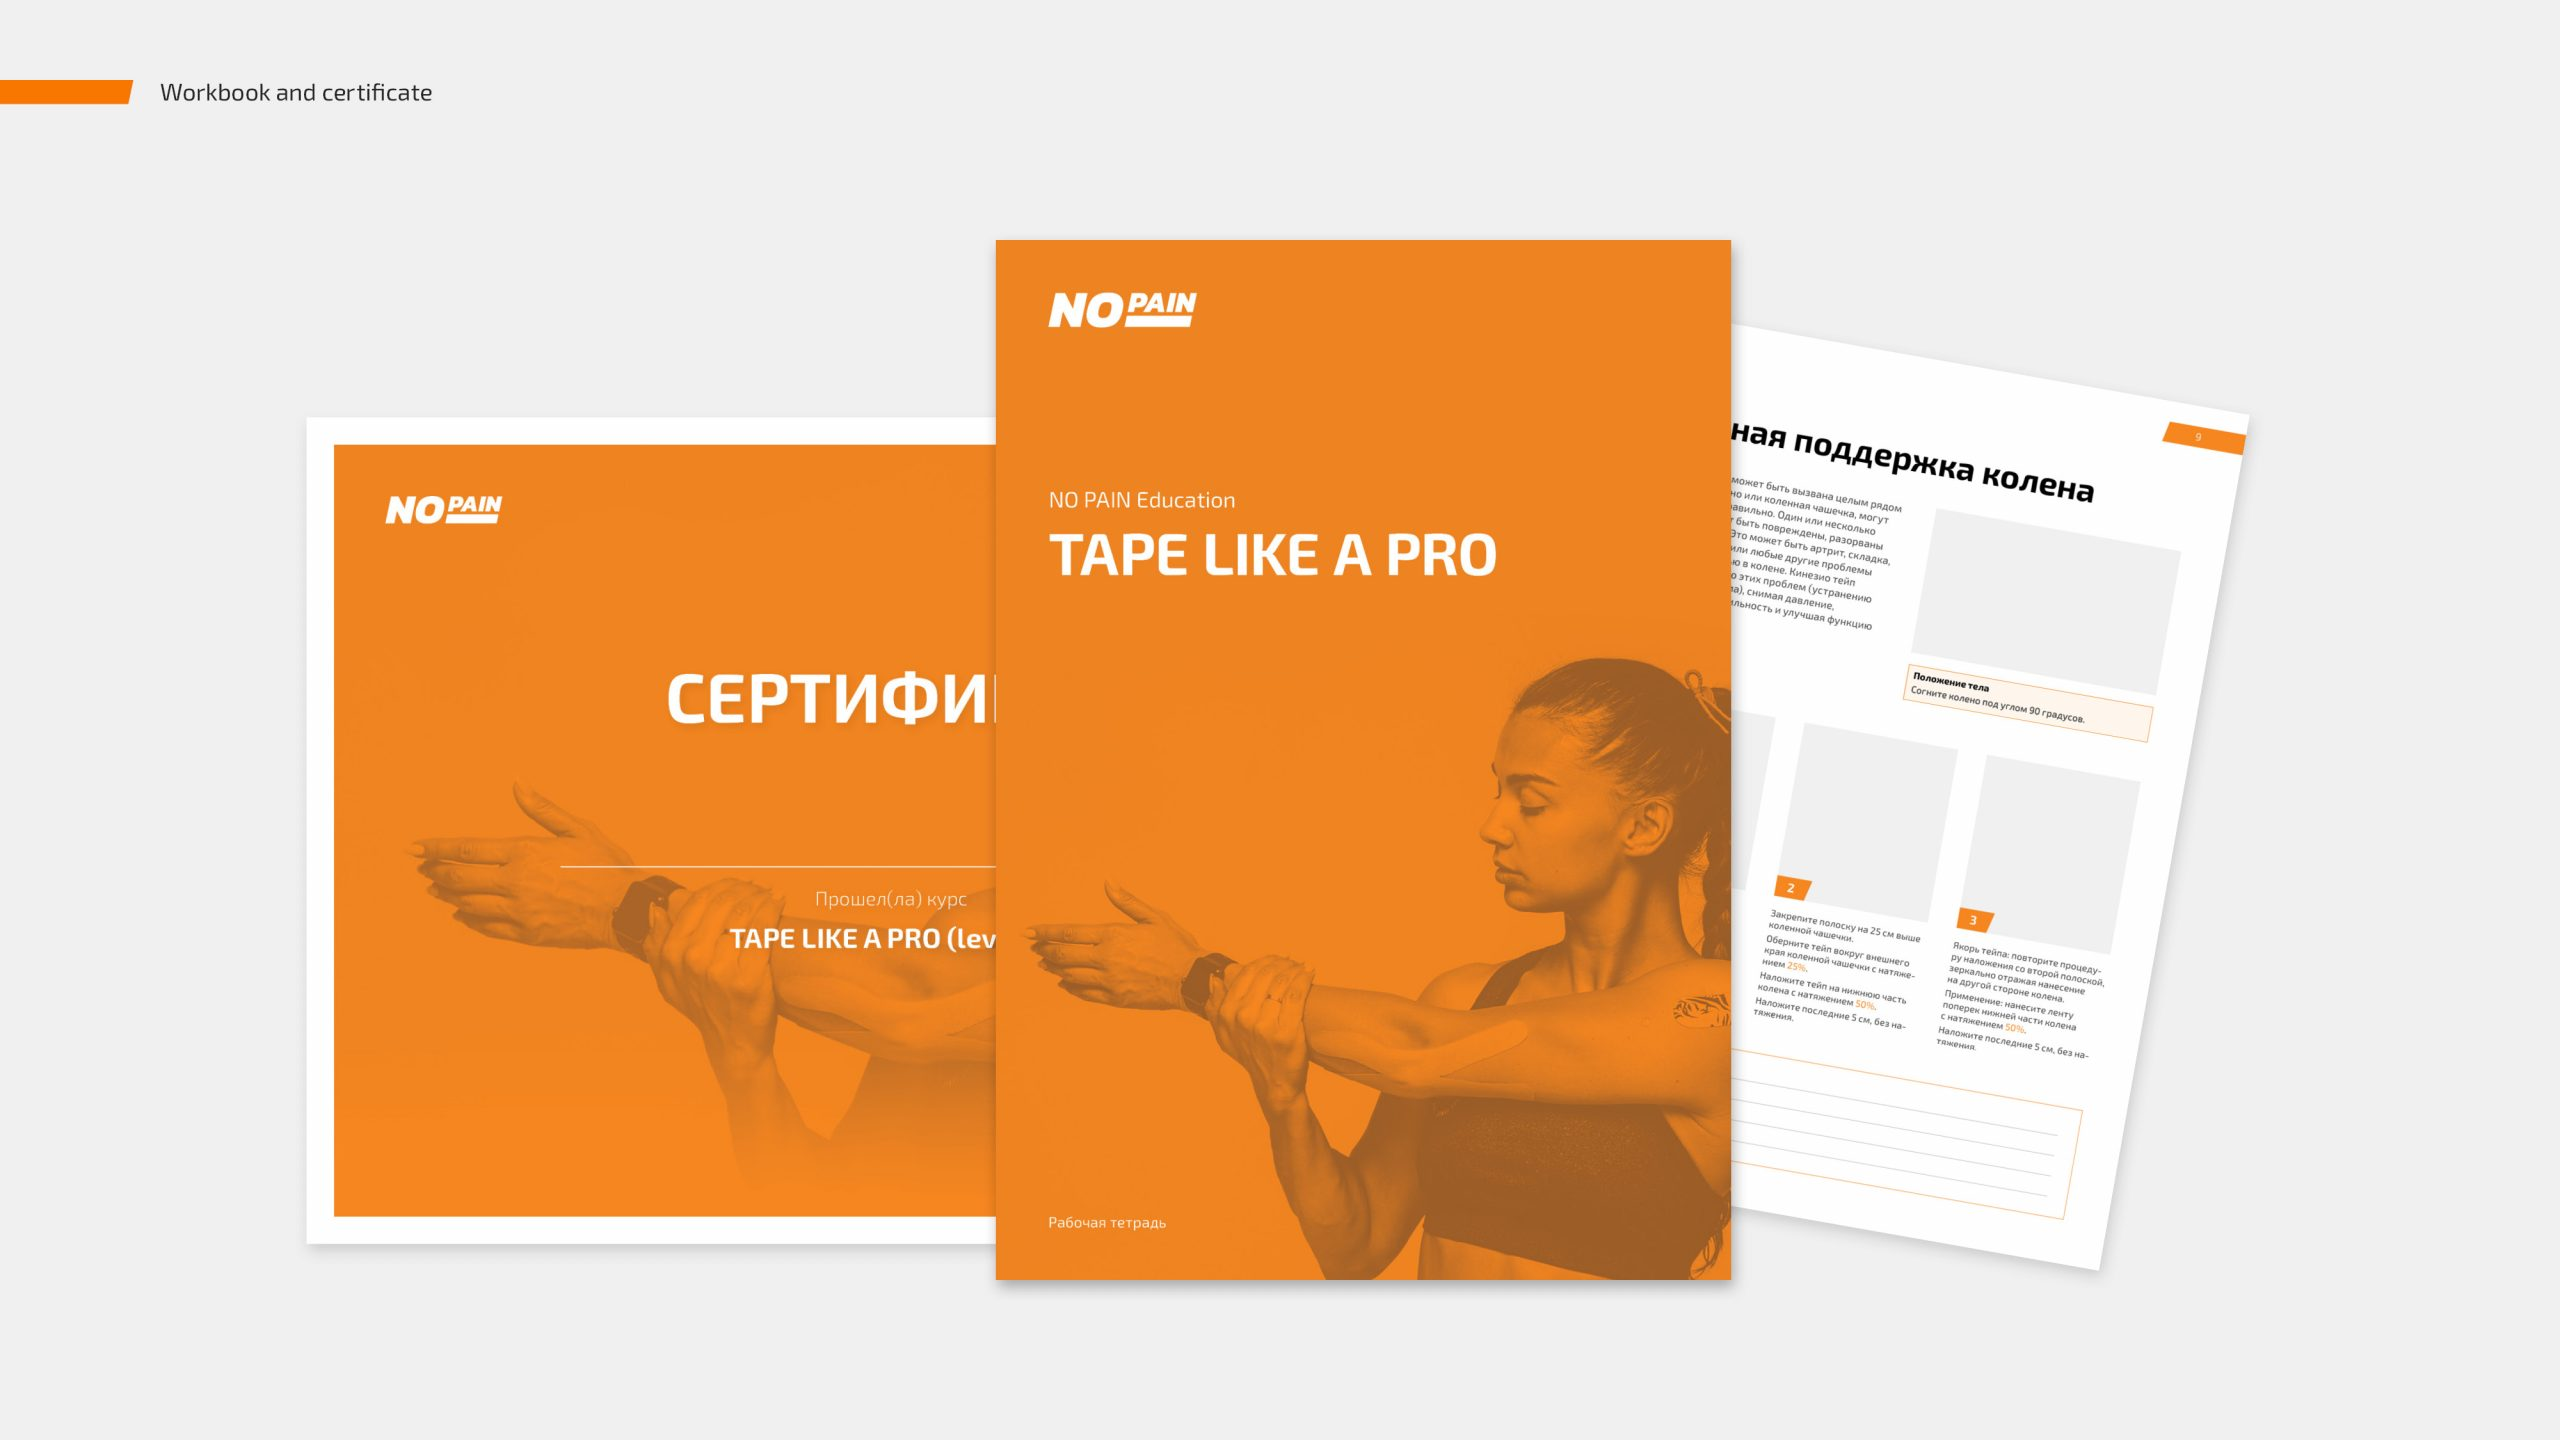 No Pain kinesio taping course certificate and workbook